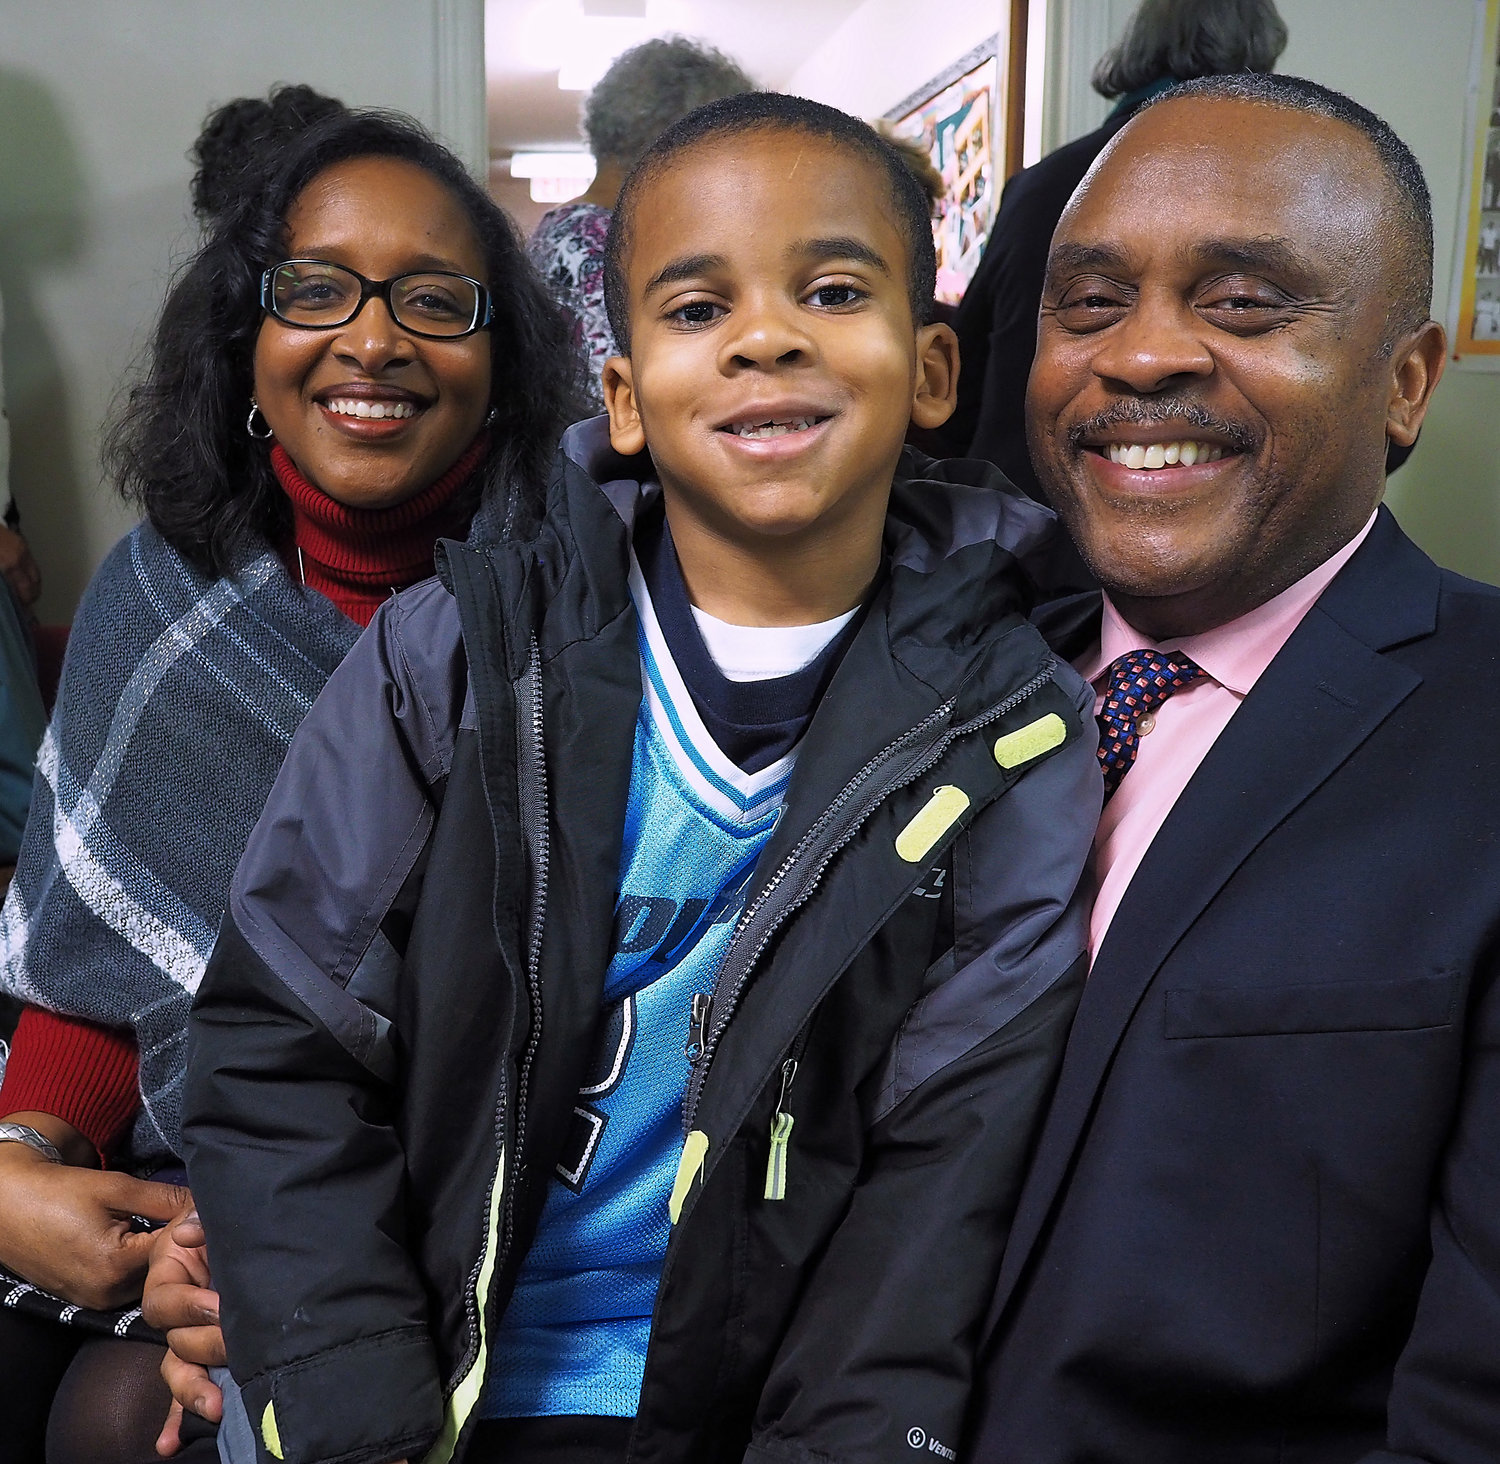 Representative Robert Reives II (right) attended the NAACP's MLK breakfast with his wife Cynthia and their son, T.J.